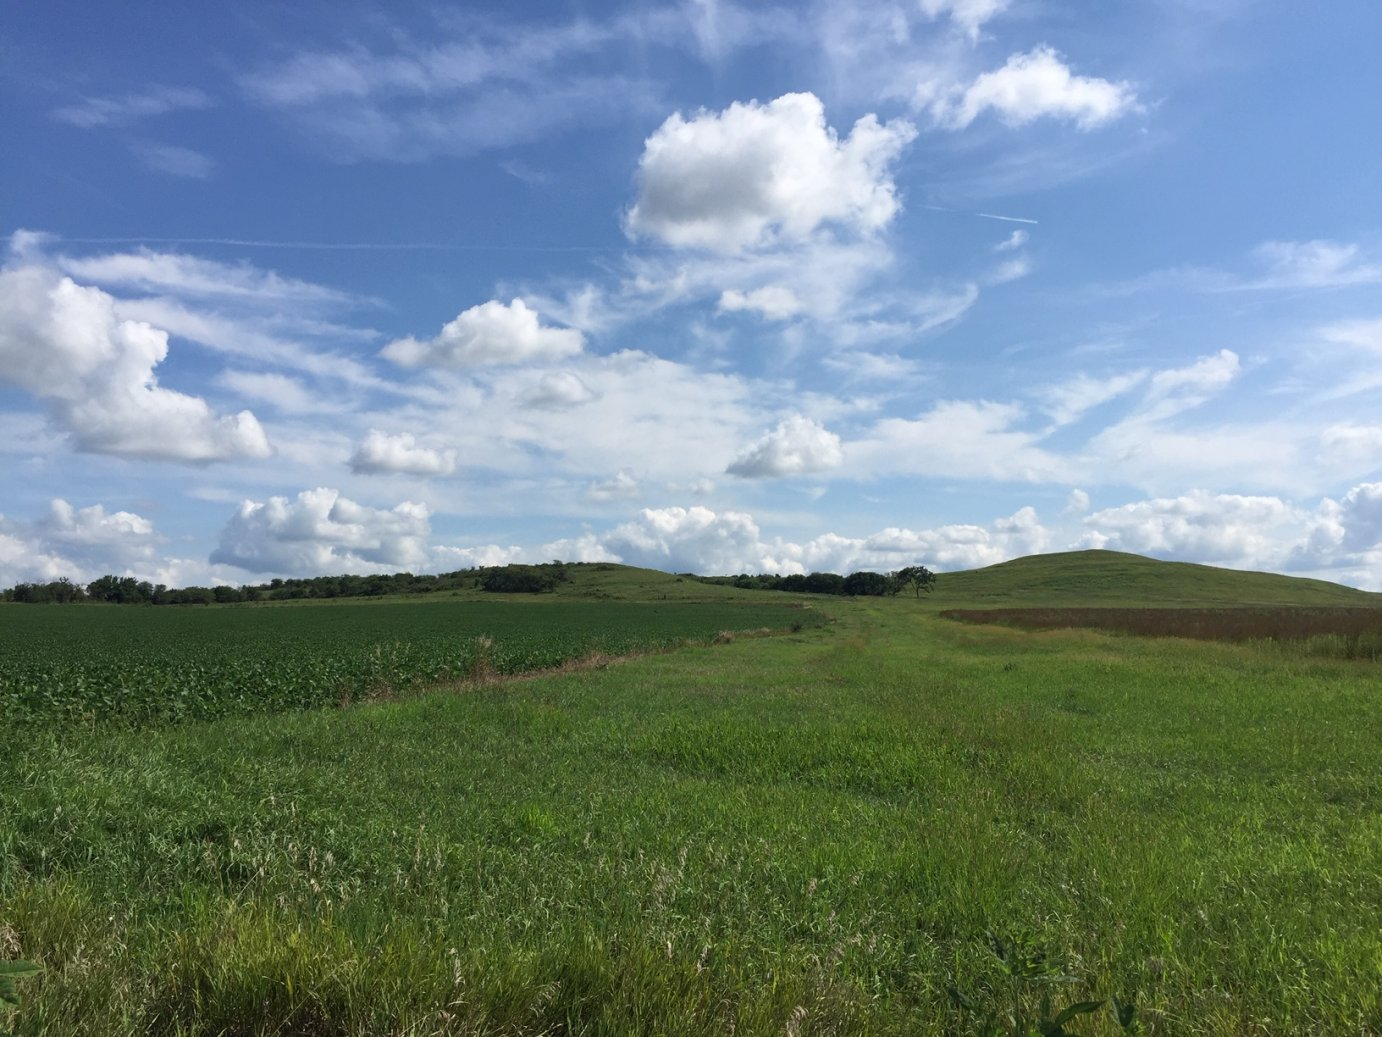 Flint Hills, south of Wamego (Photo by J. Schafer)